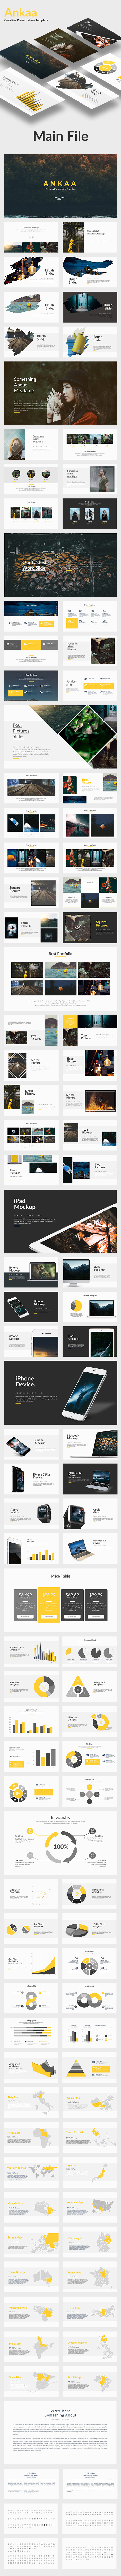 Ankaa - Creative Keynote Template - Creative Keynote Templates